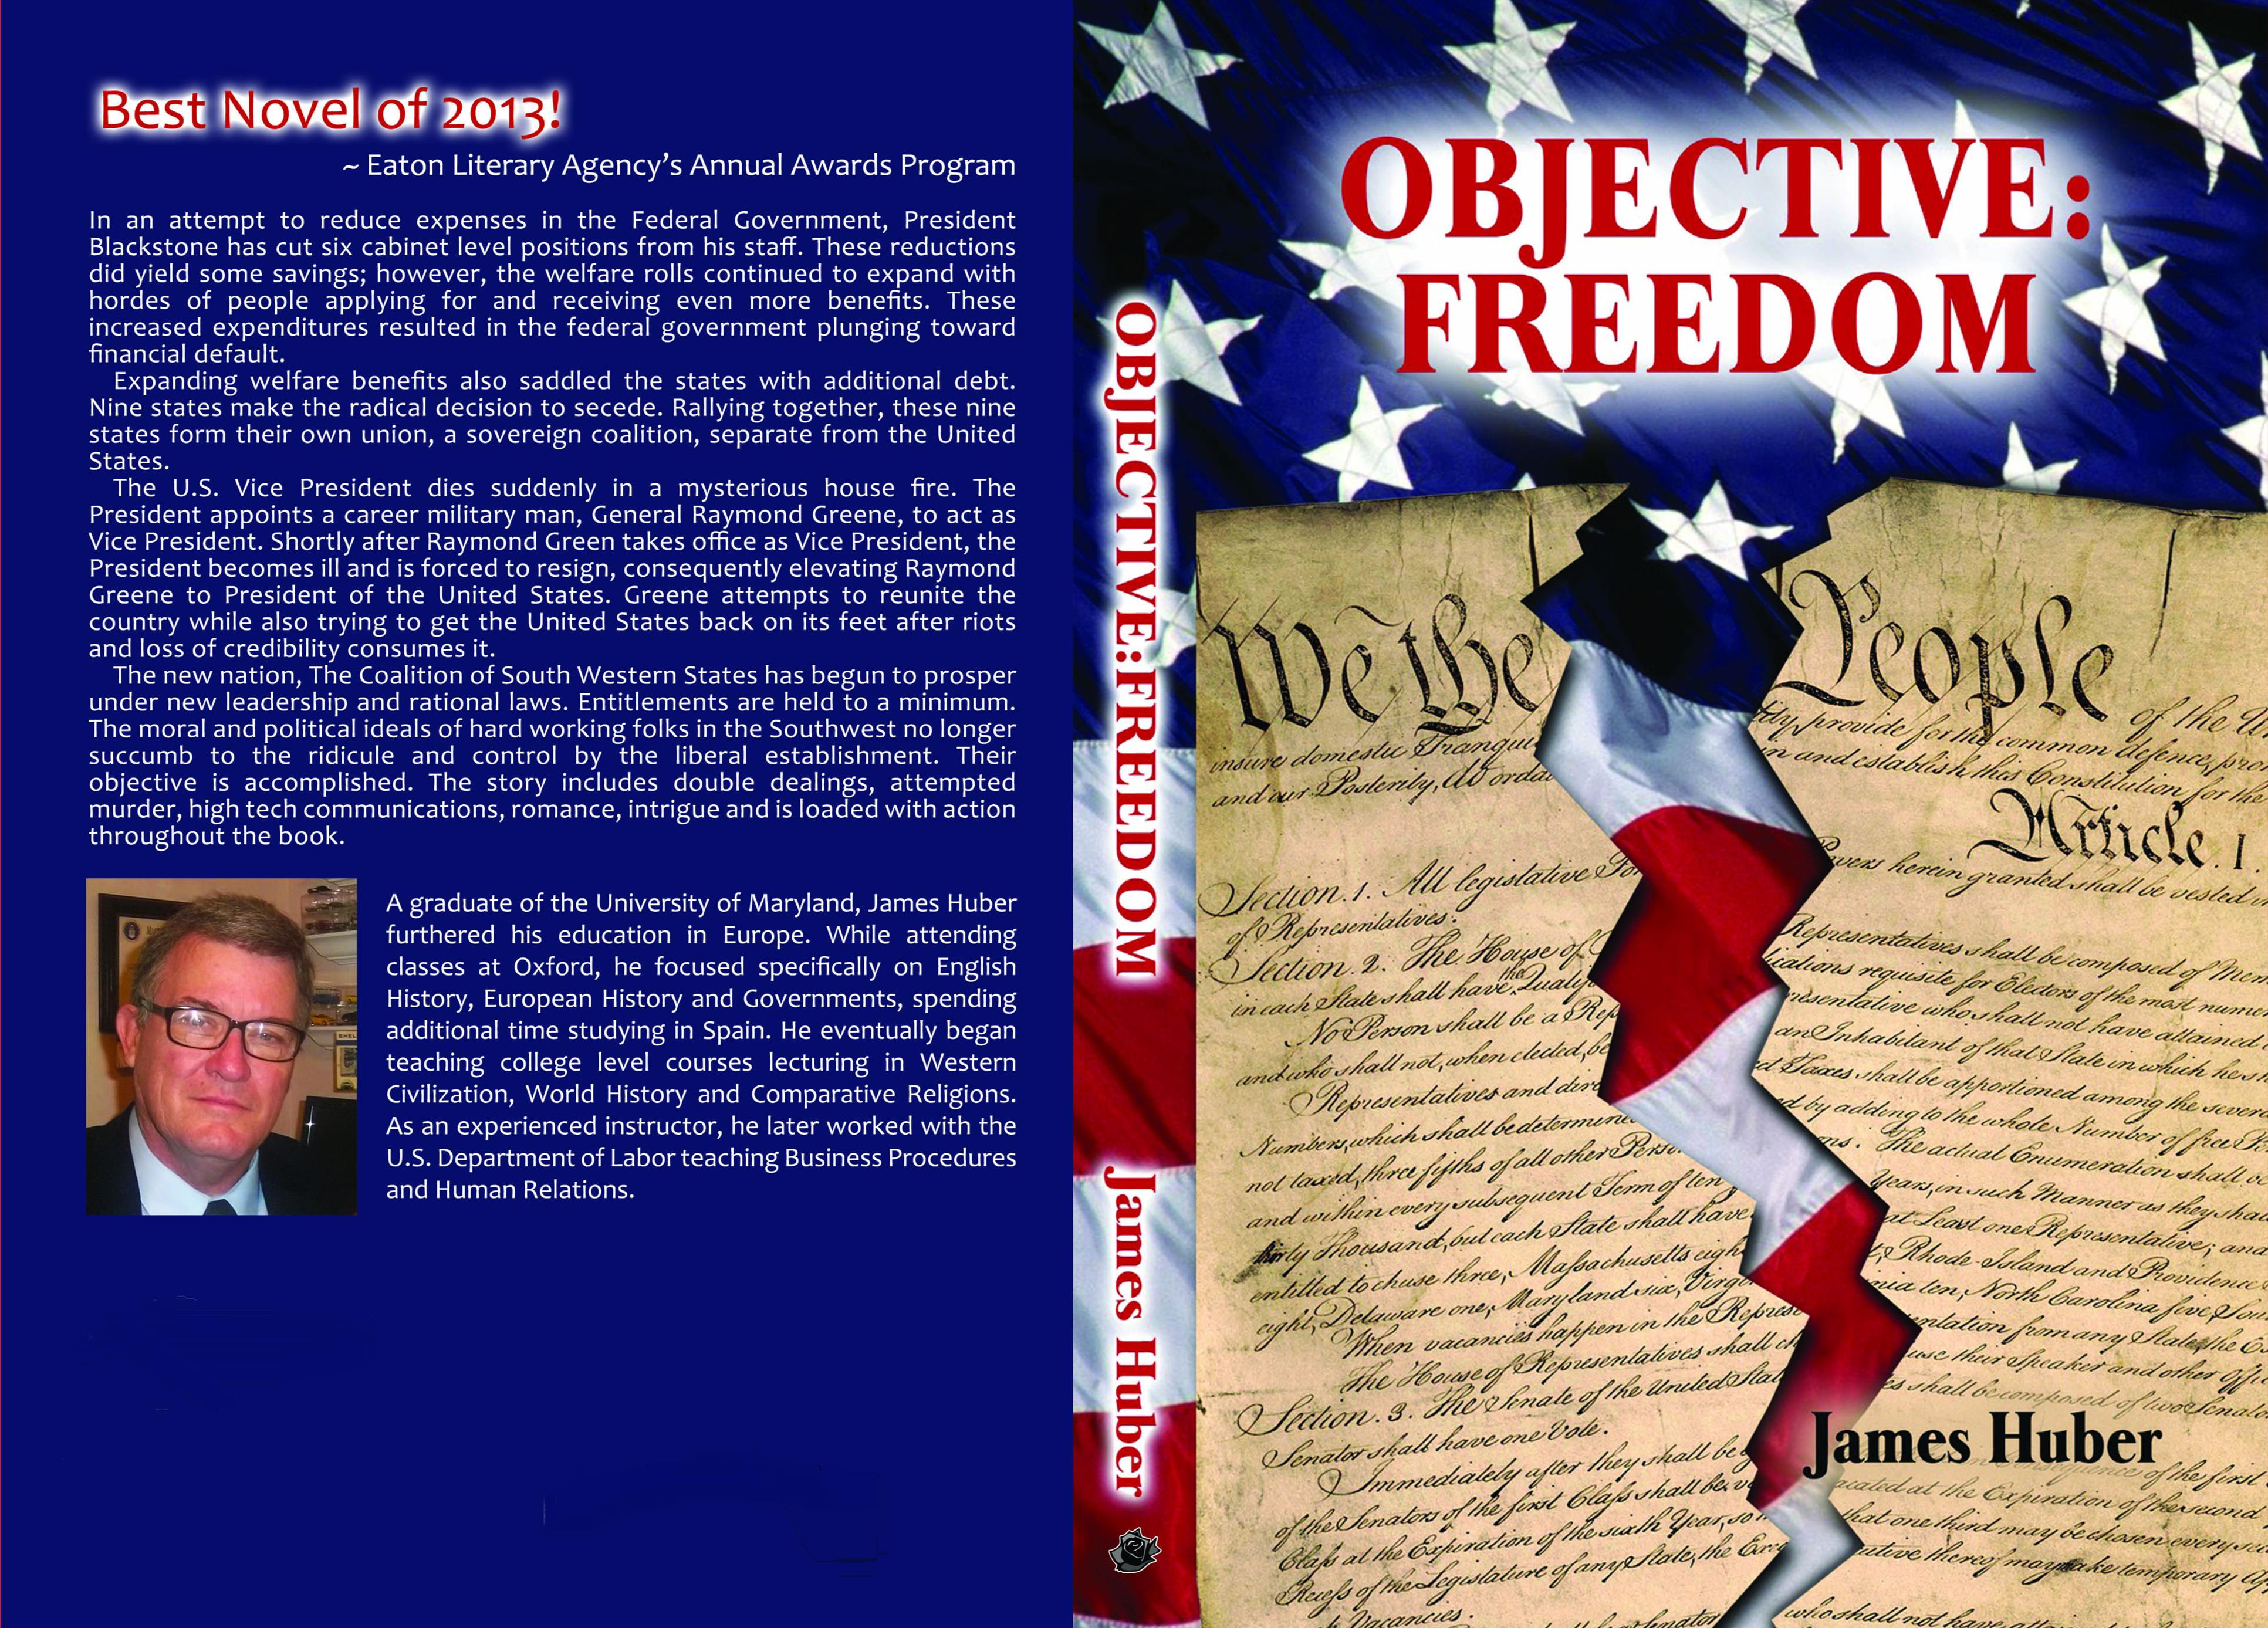 Objectiv:Freedom cover image